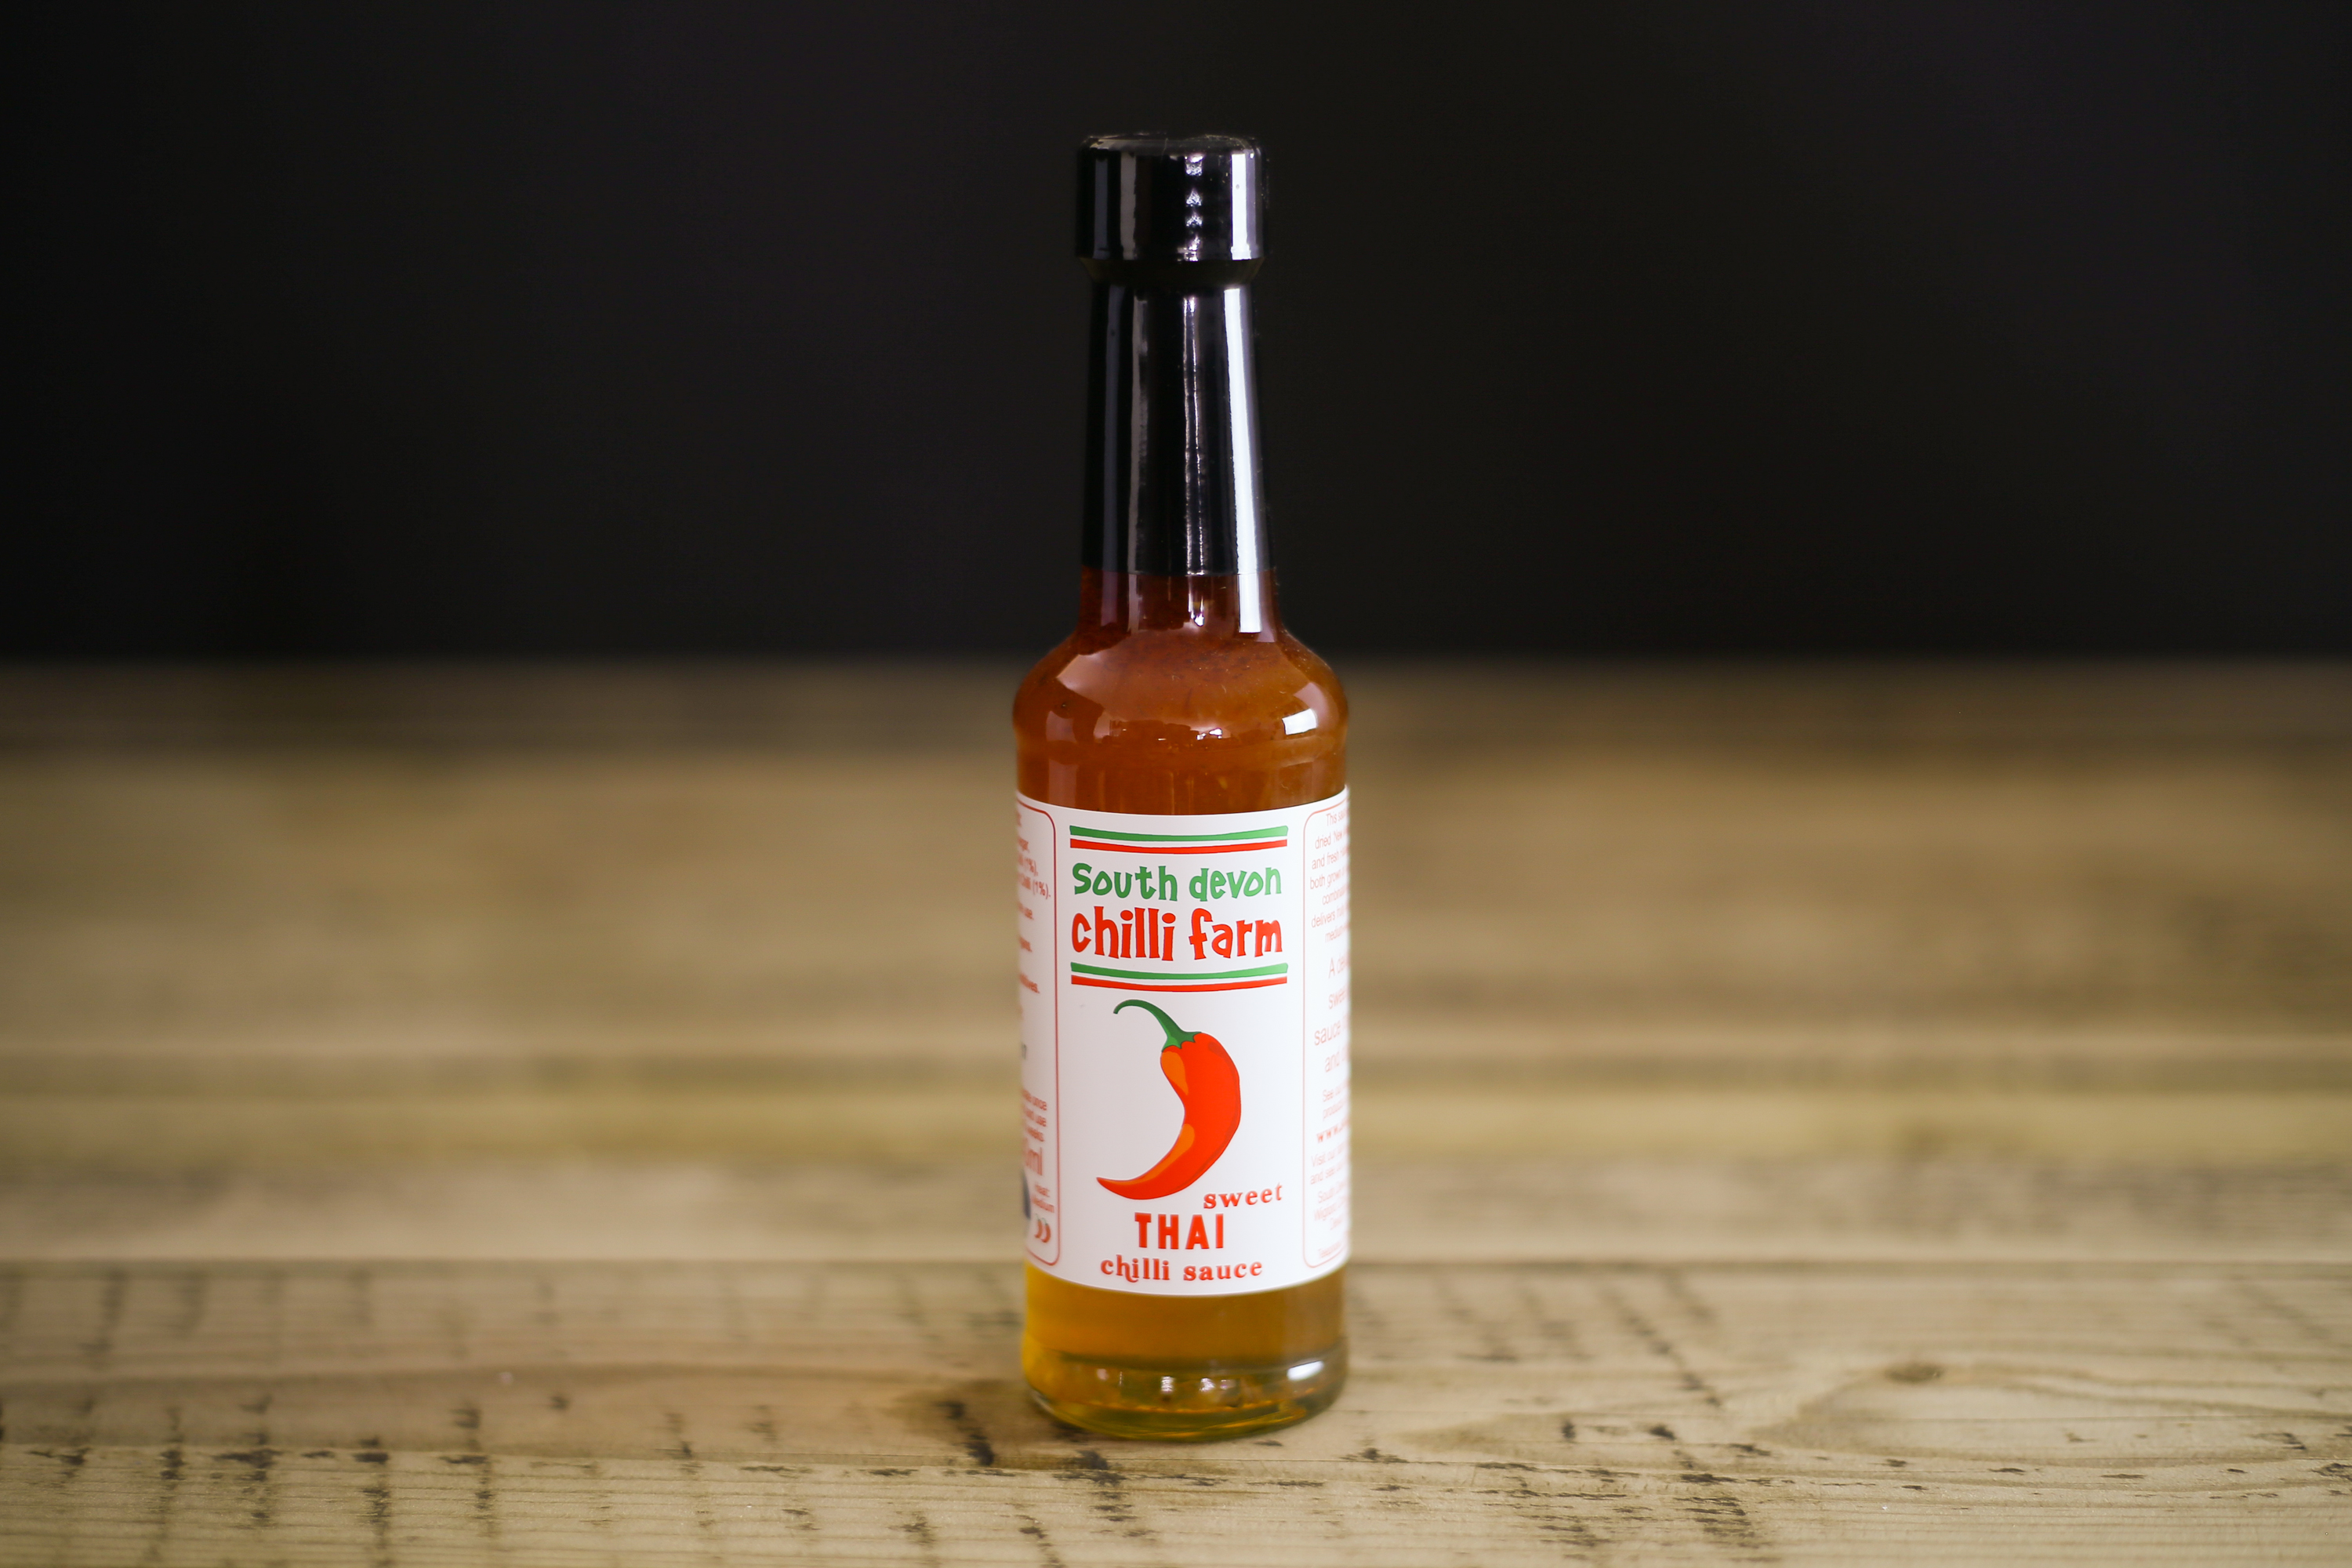 South Devon Chilli Farm Sweet Thai Chilli Sauce